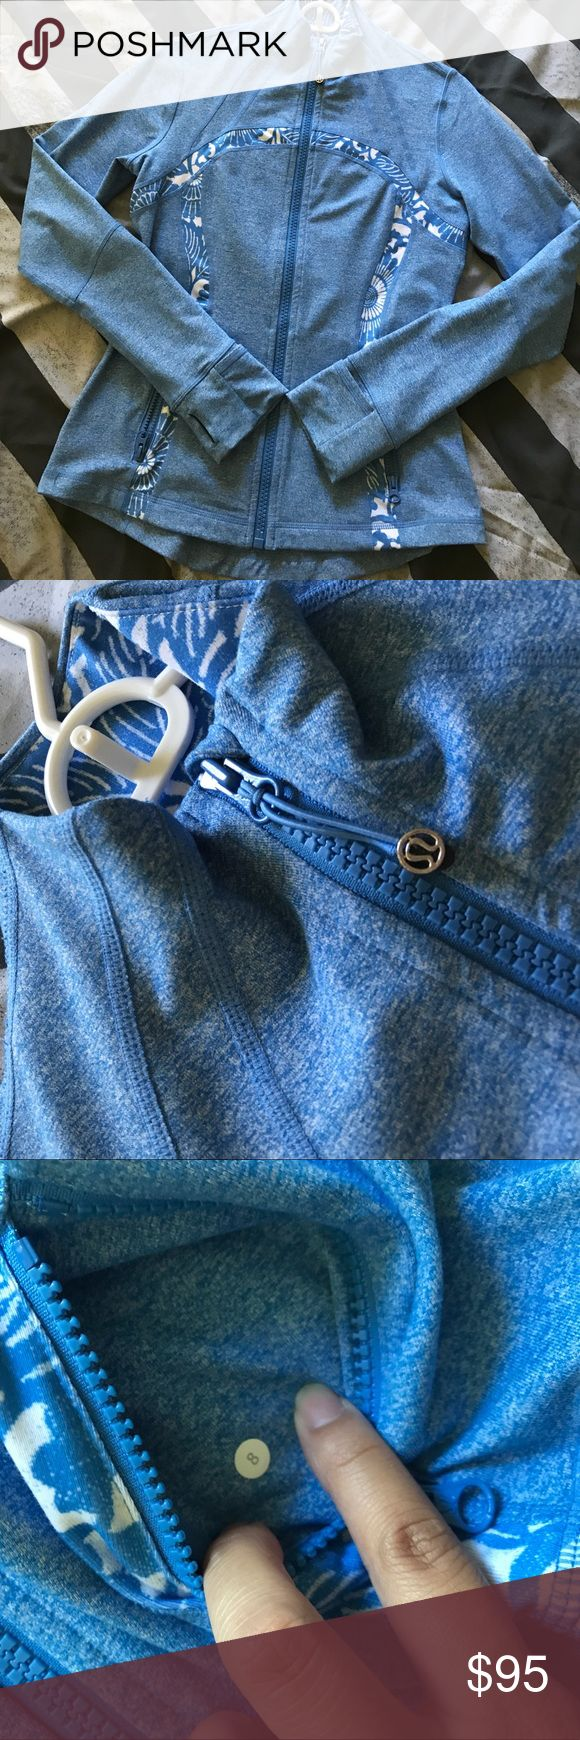 Heathered Blue Beach Porcelain Define Flawless! Want to trade for other Heathered or maroon/deep purple defines same size same condition! lululemon athletica Jackets & Coats